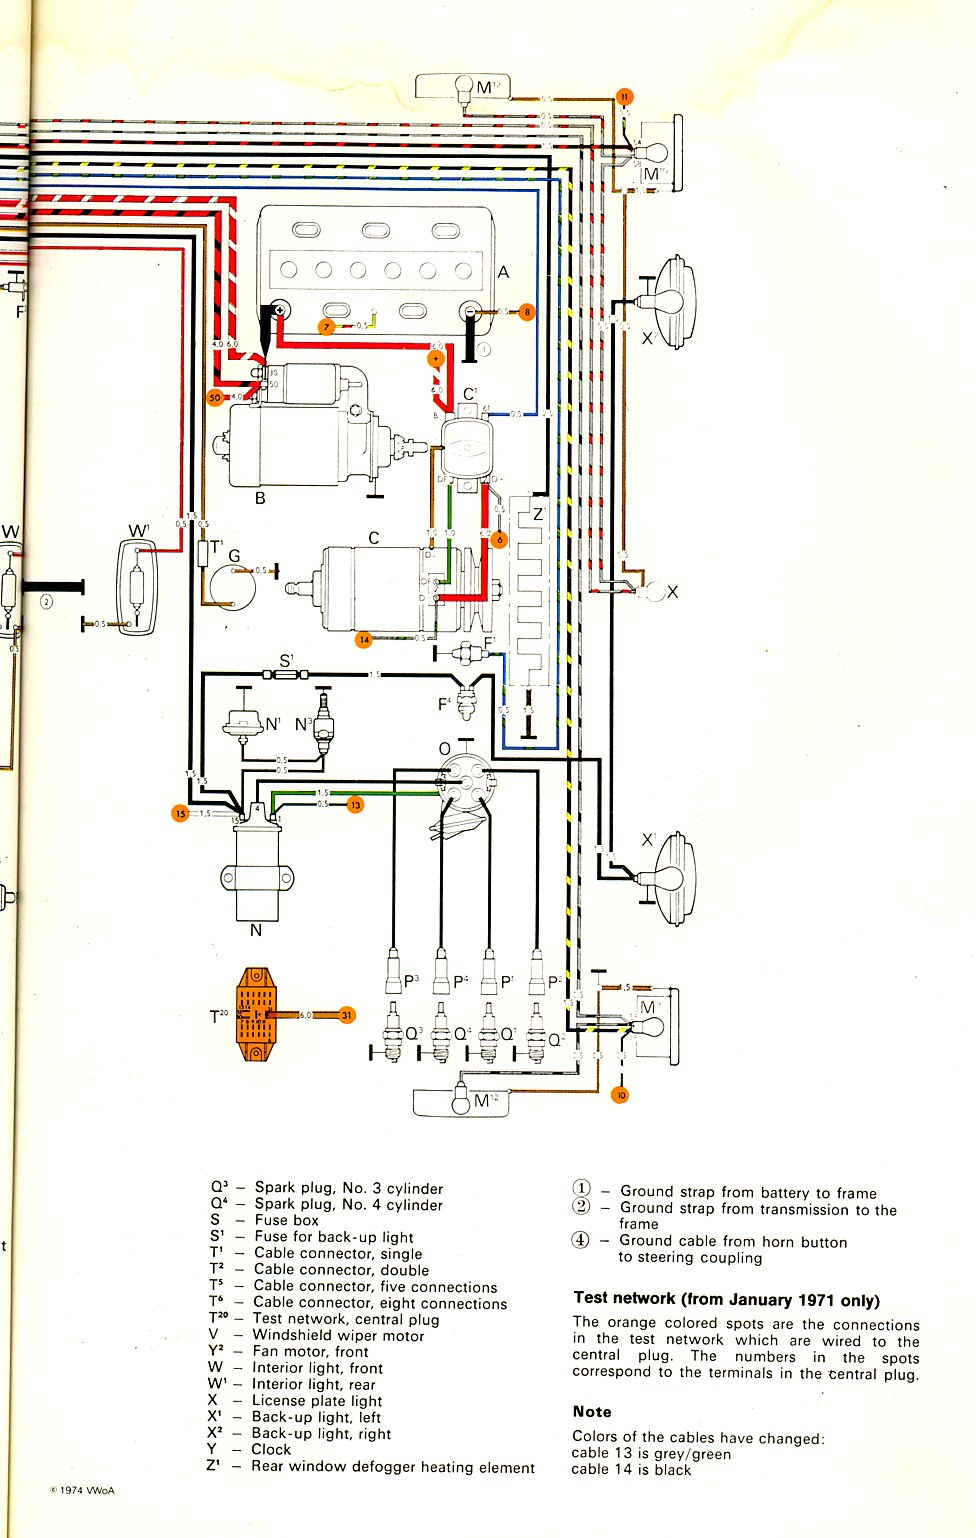 hight resolution of 1972 firebird wiper motor wiring diagram wiring diagram 67 camaro wiper wiring diagram 1972 firebird wiper